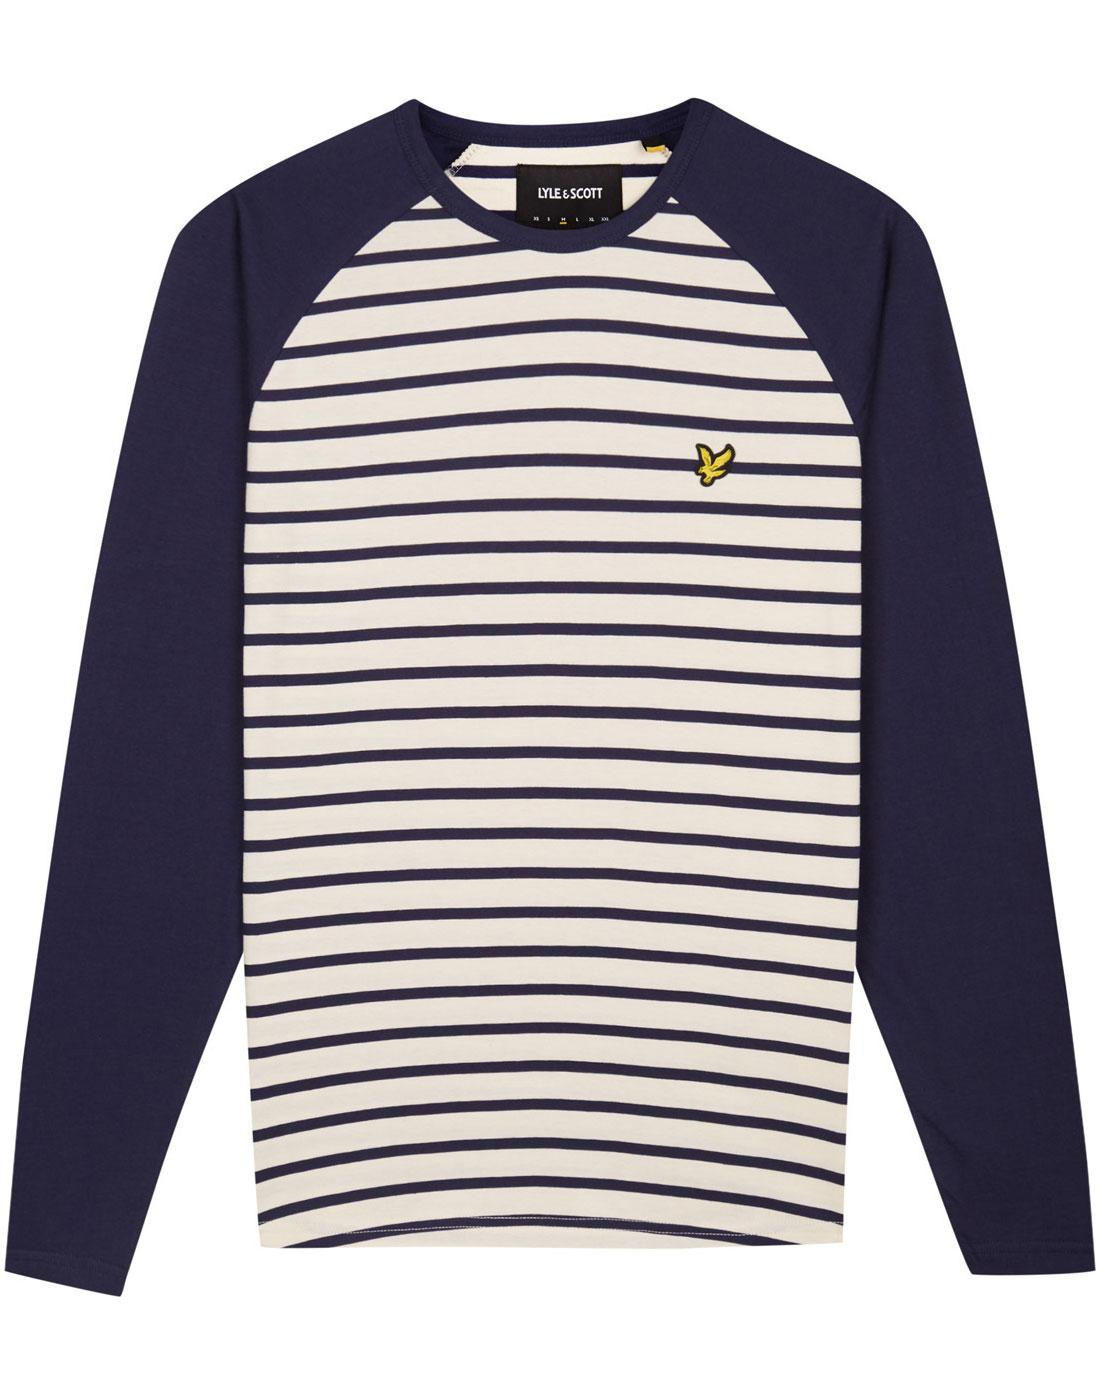 LYLE & SCOTT Retro Mod Breton Stripe Baseball Tee